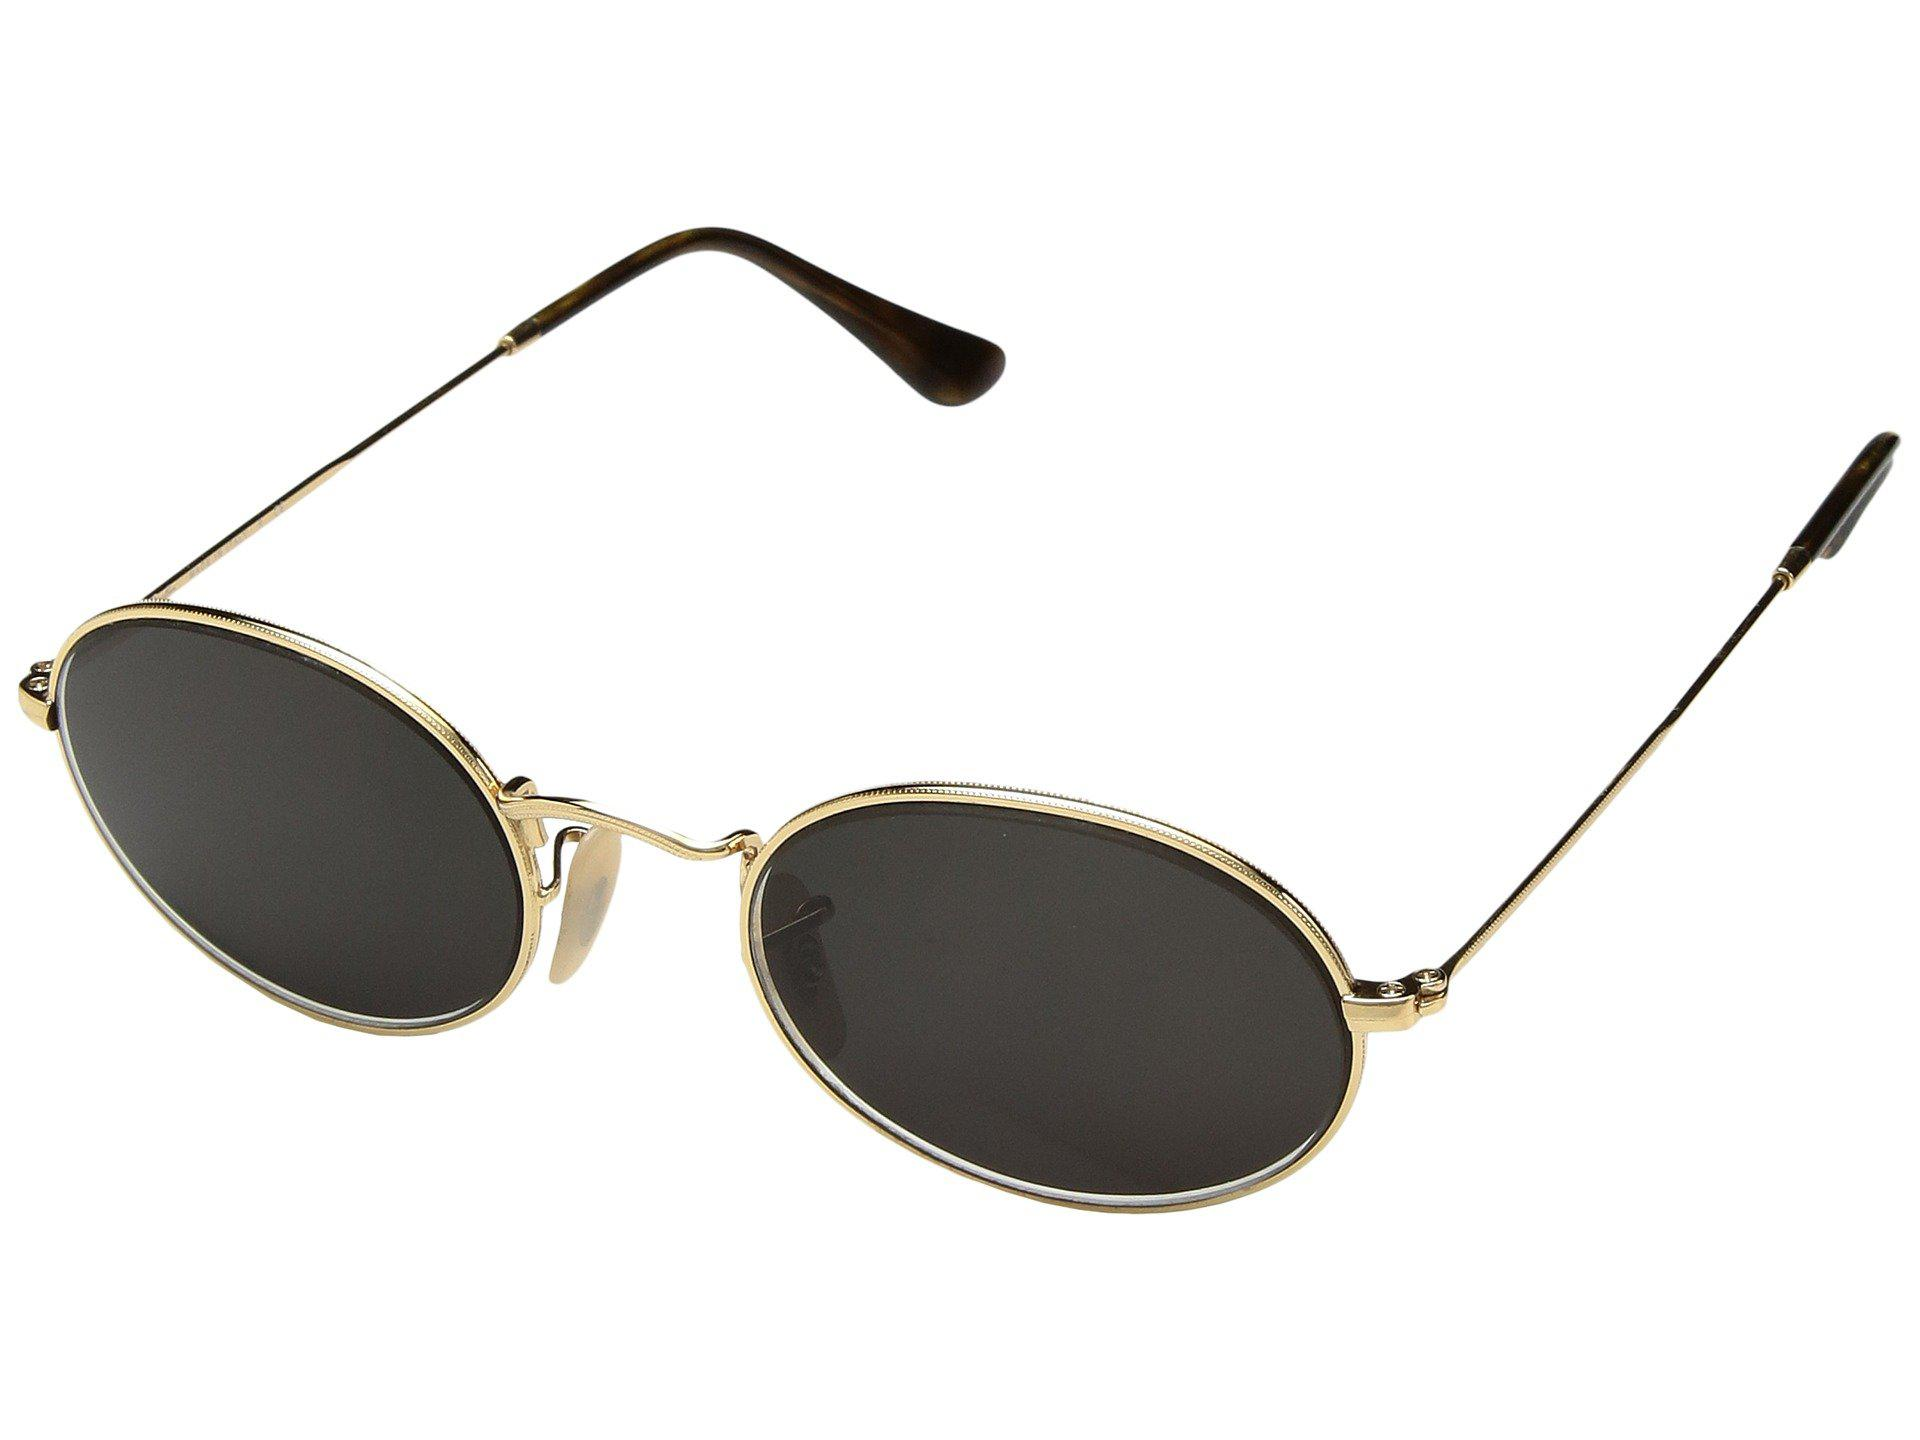 58a6d868db Lyst - Ray-Ban 0rb3547 Oval Flat Lenses 51mm (gold) Fashion ...